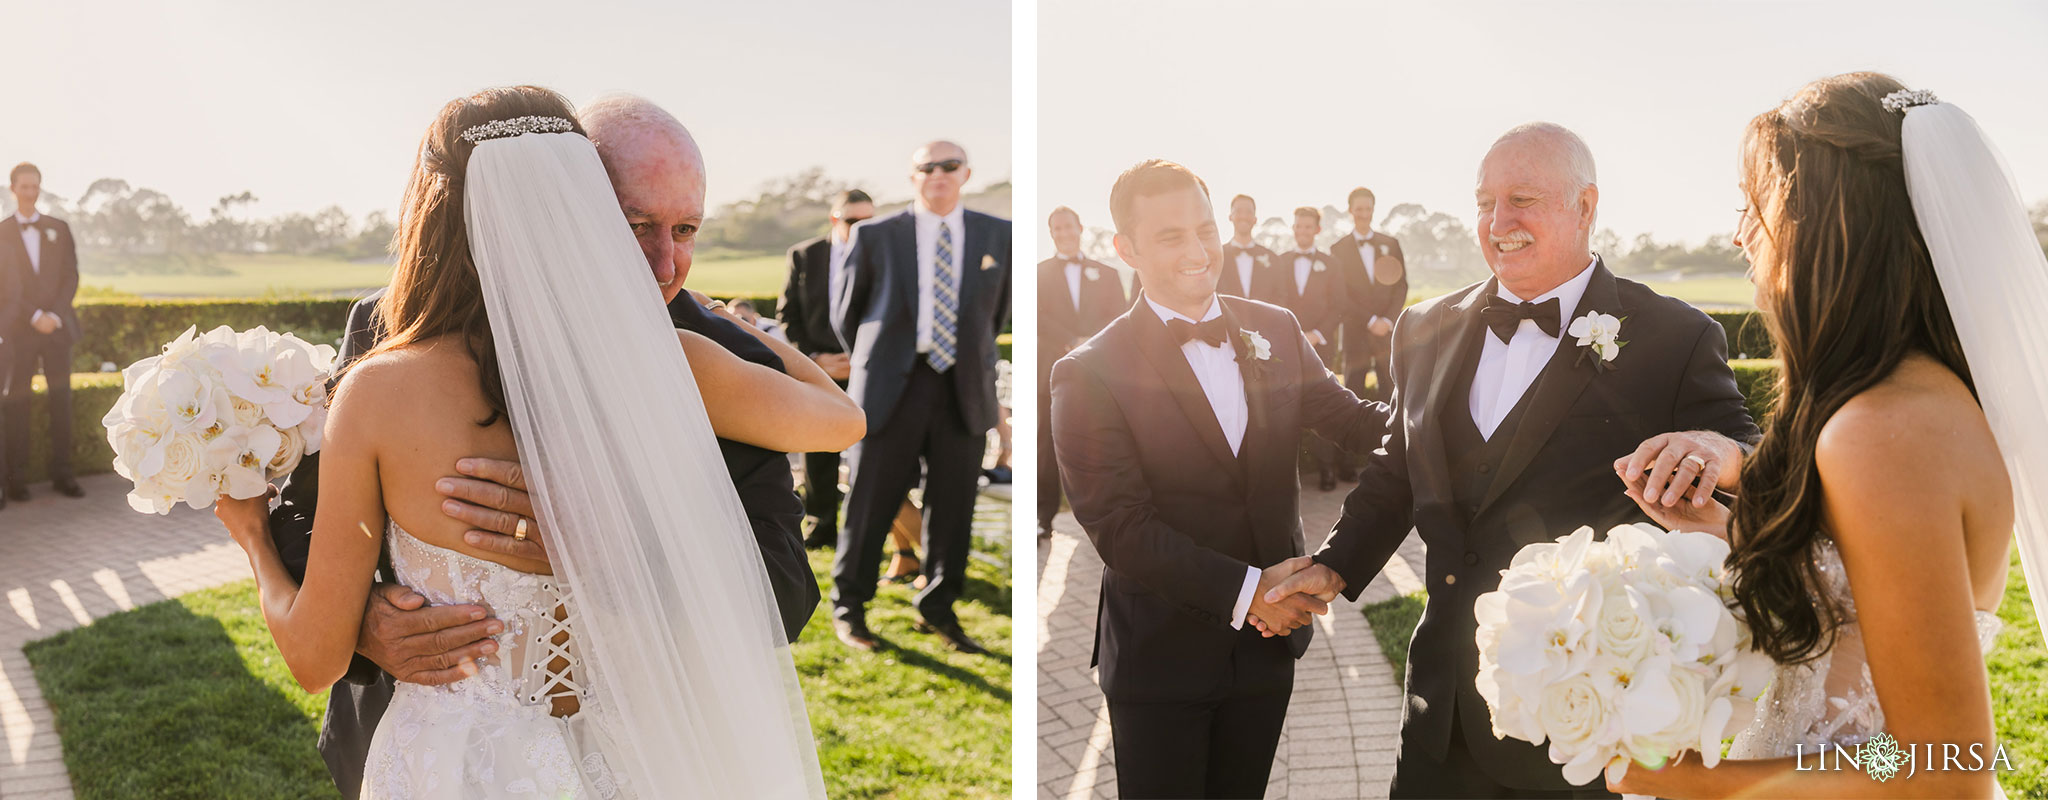 76 pelican hill orange county wedding photography